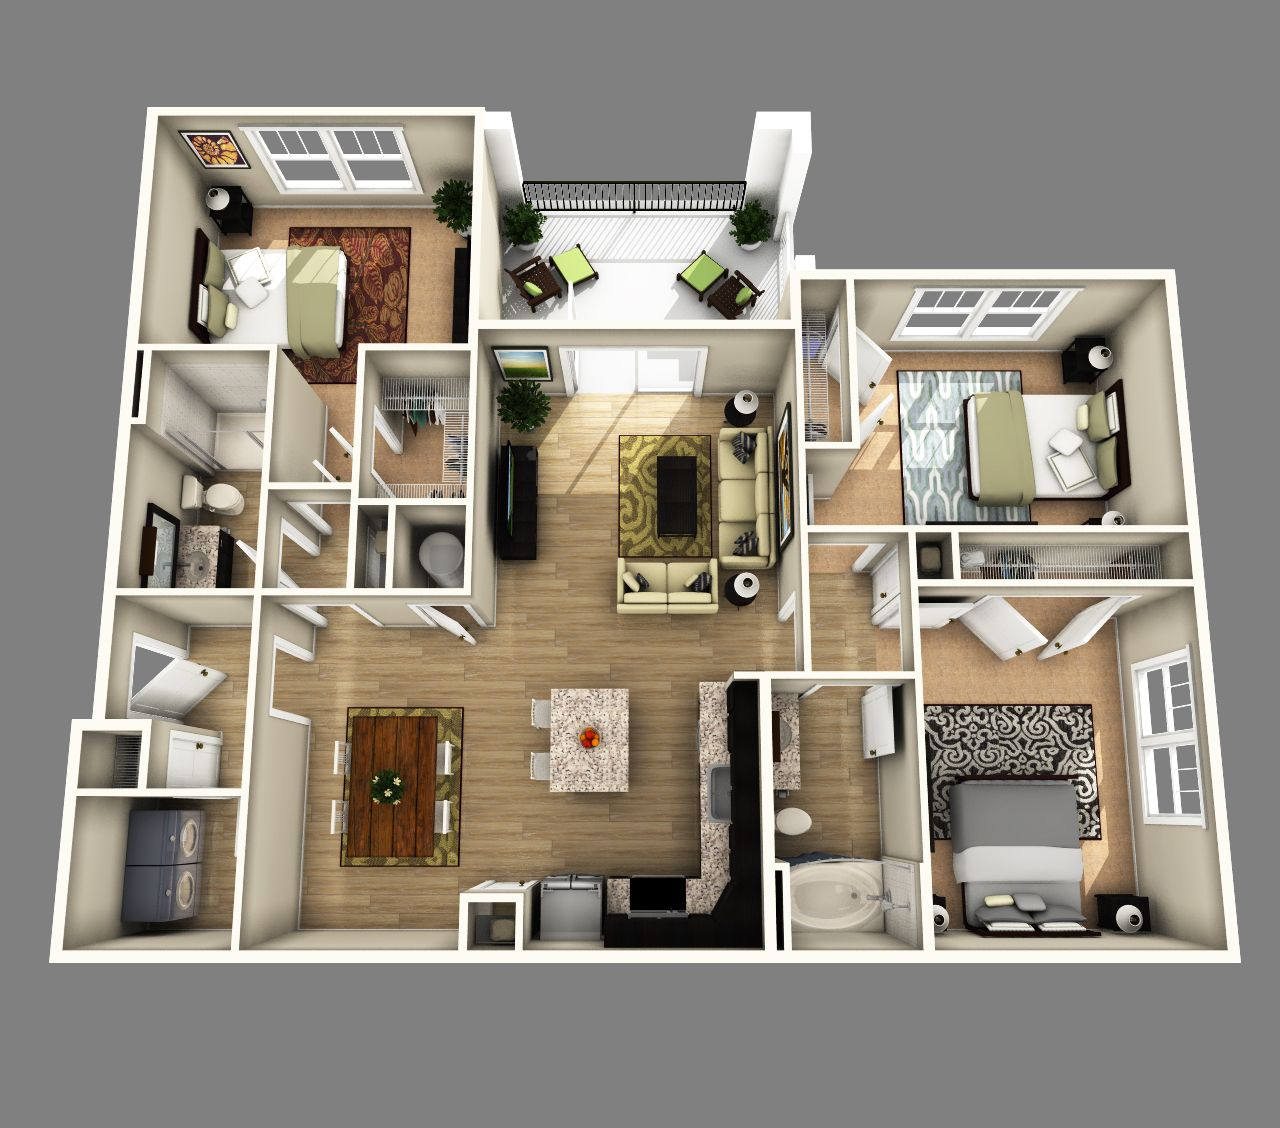 Bungalow 3d Floor Plan: Pin By Home Decoration On Home Design Ideas